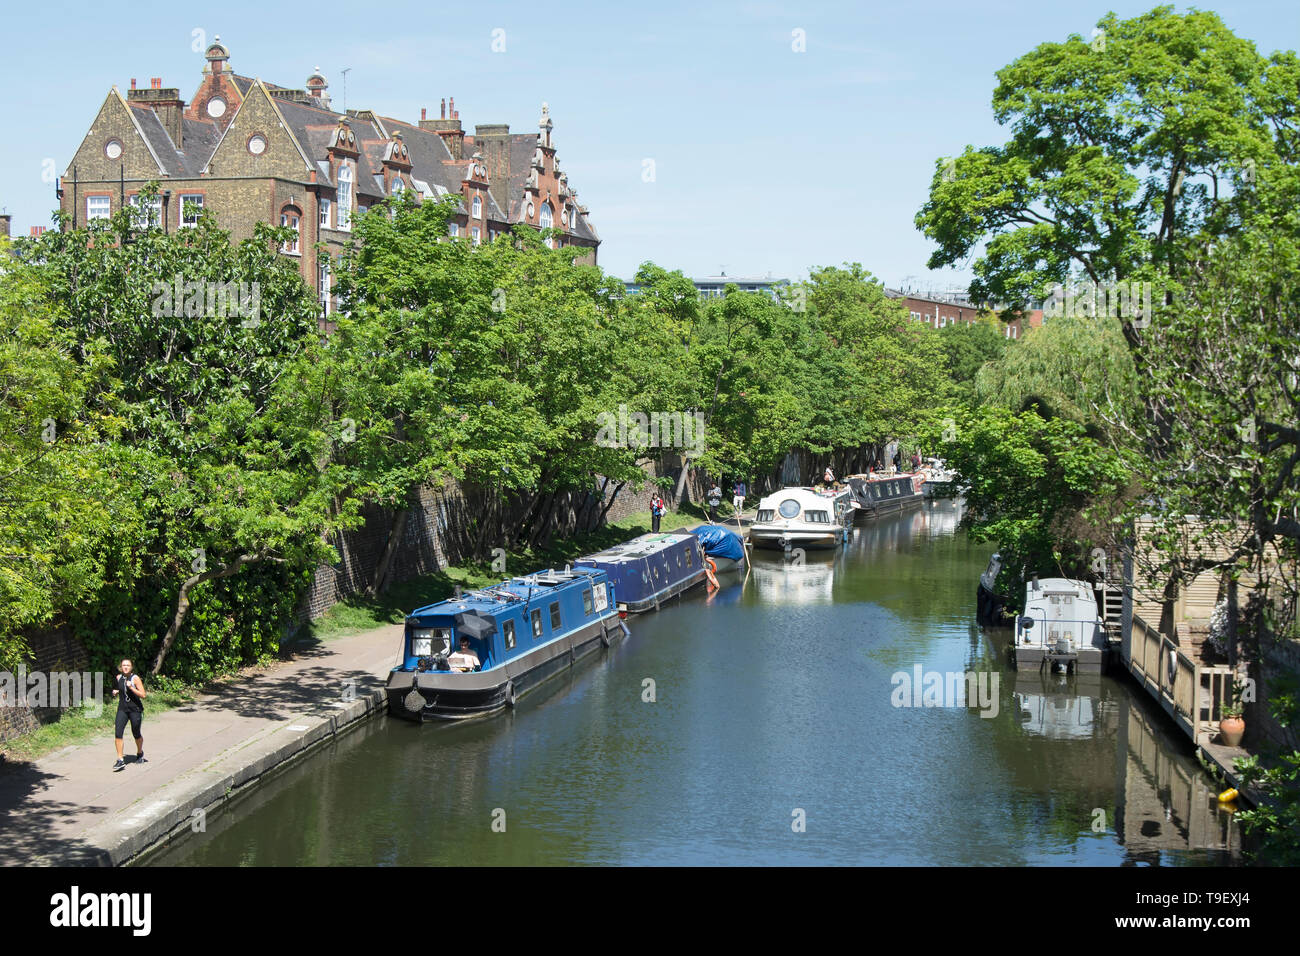 walkers and joggers on the towpath of regents canal looking towards camden town, london, england - Stock Image